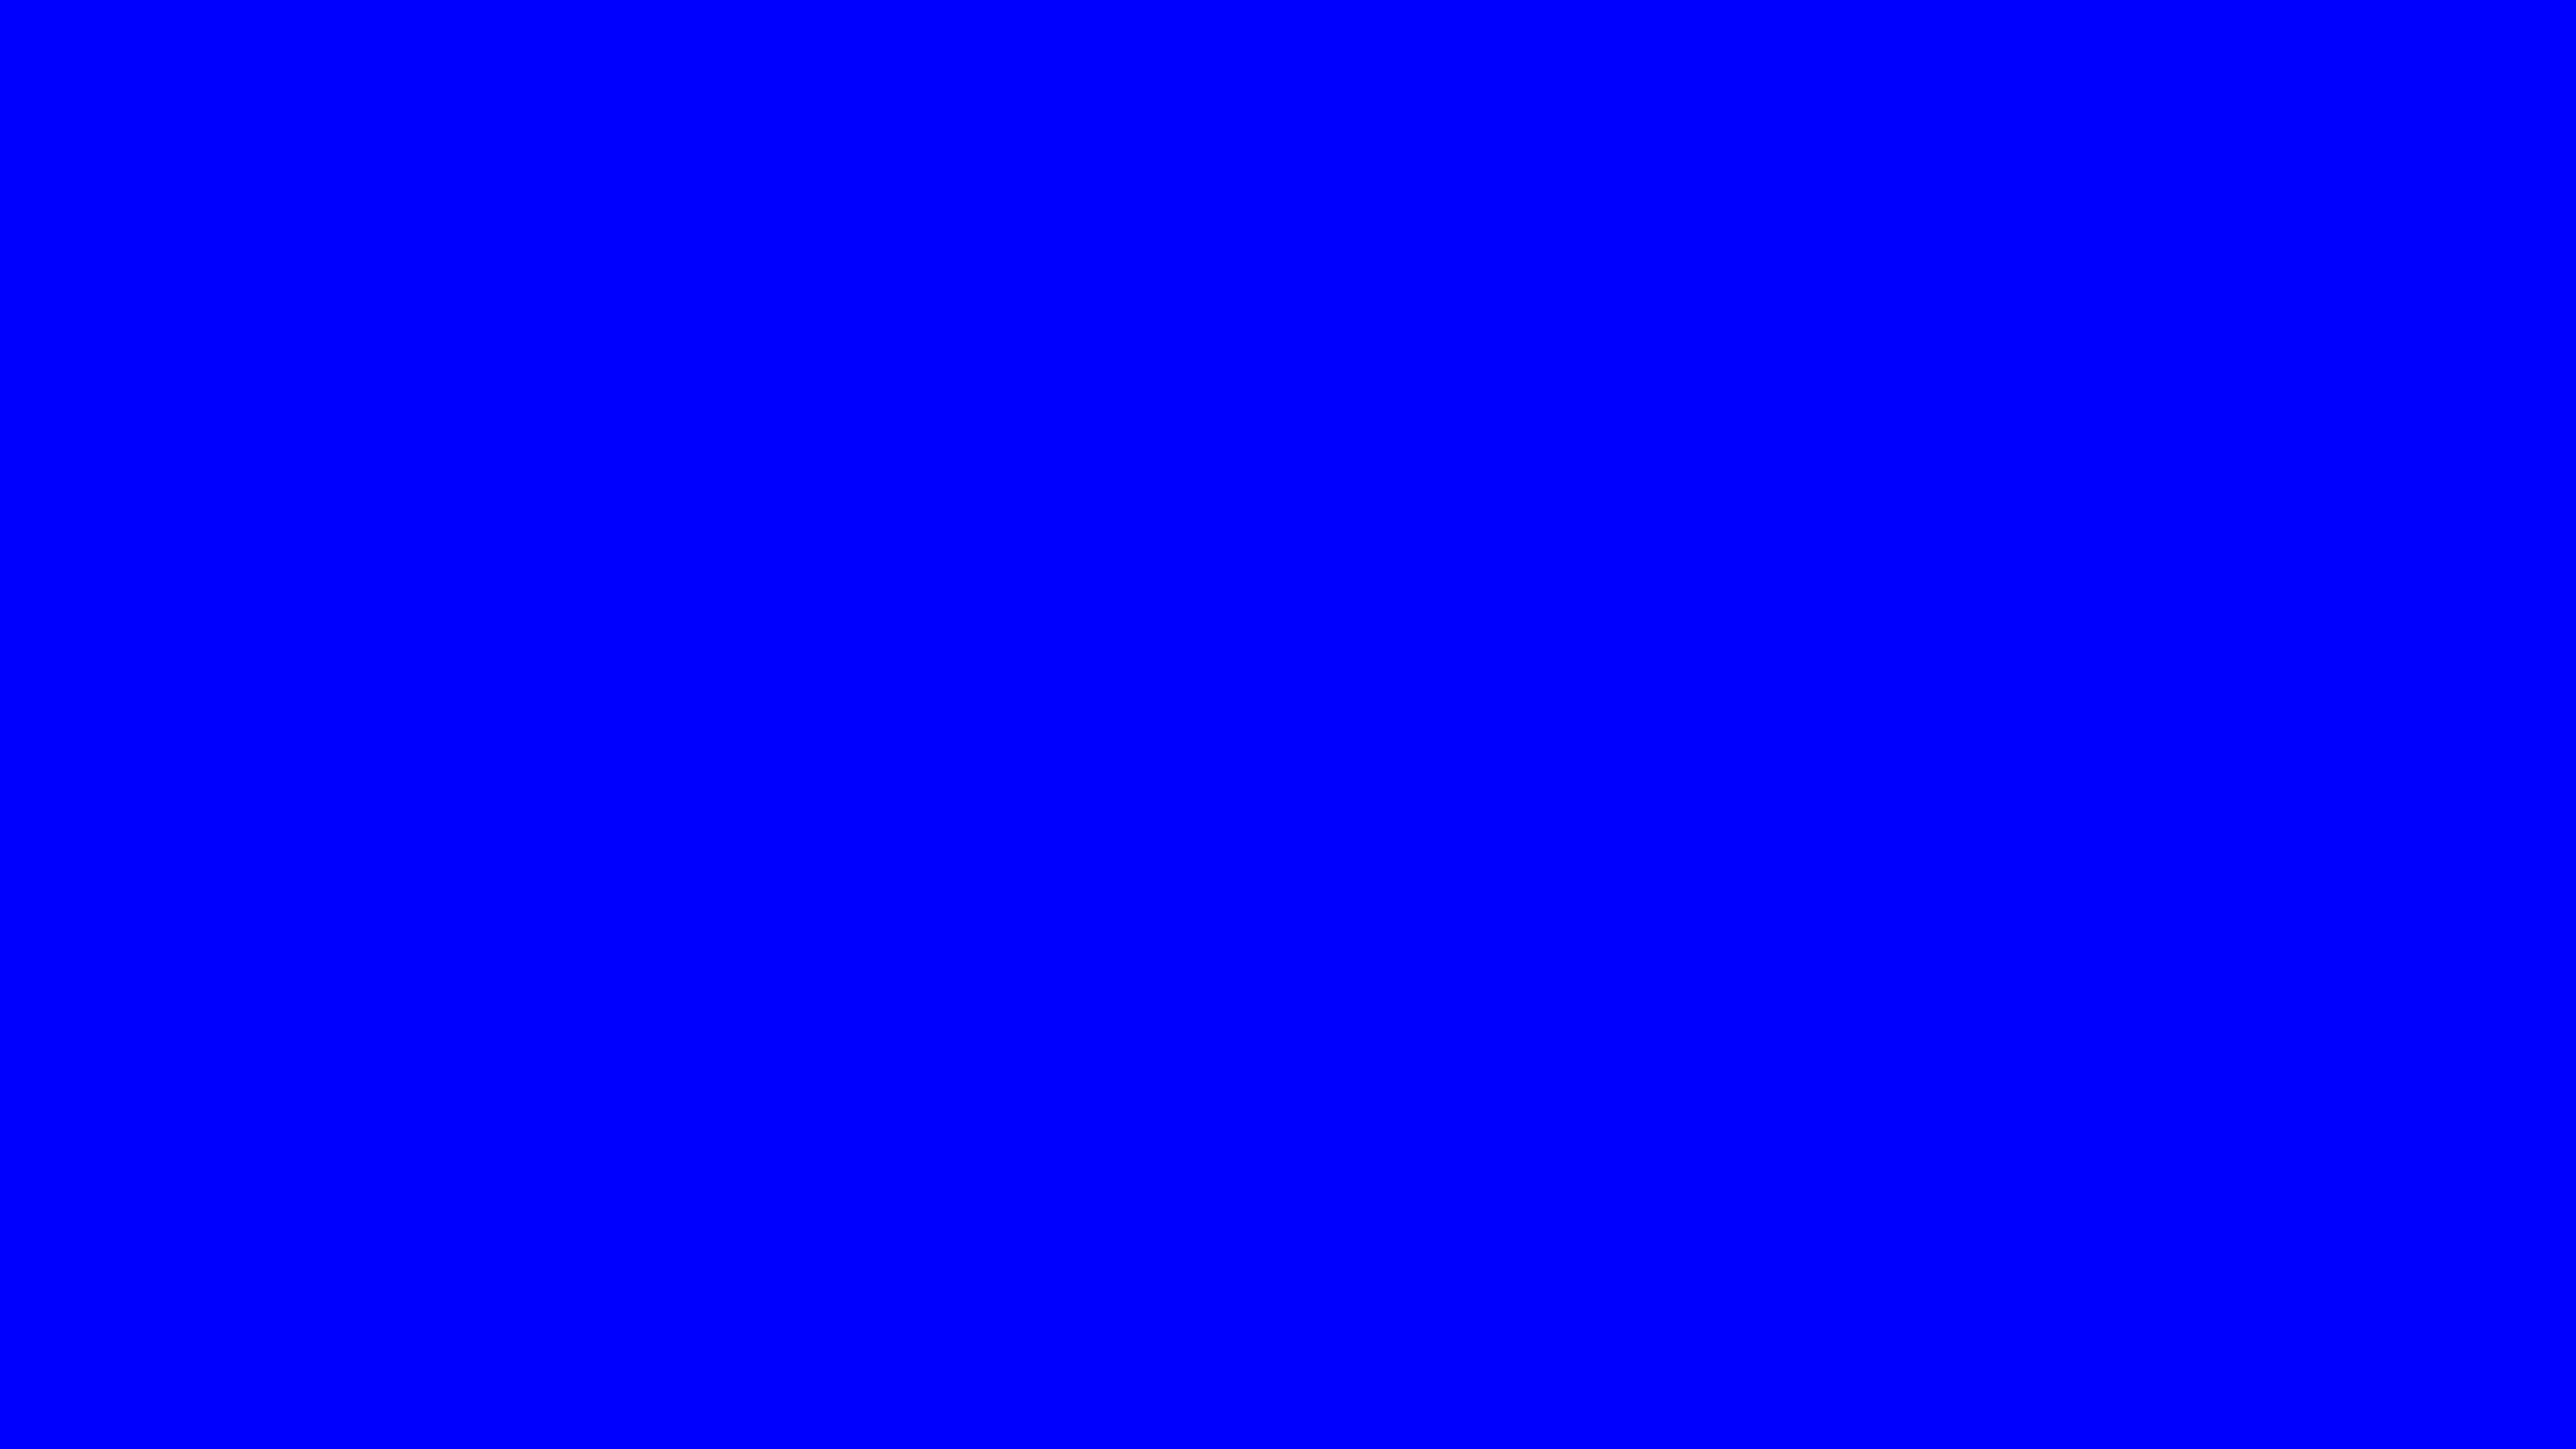 5120x2880 Blue Solid Color Background